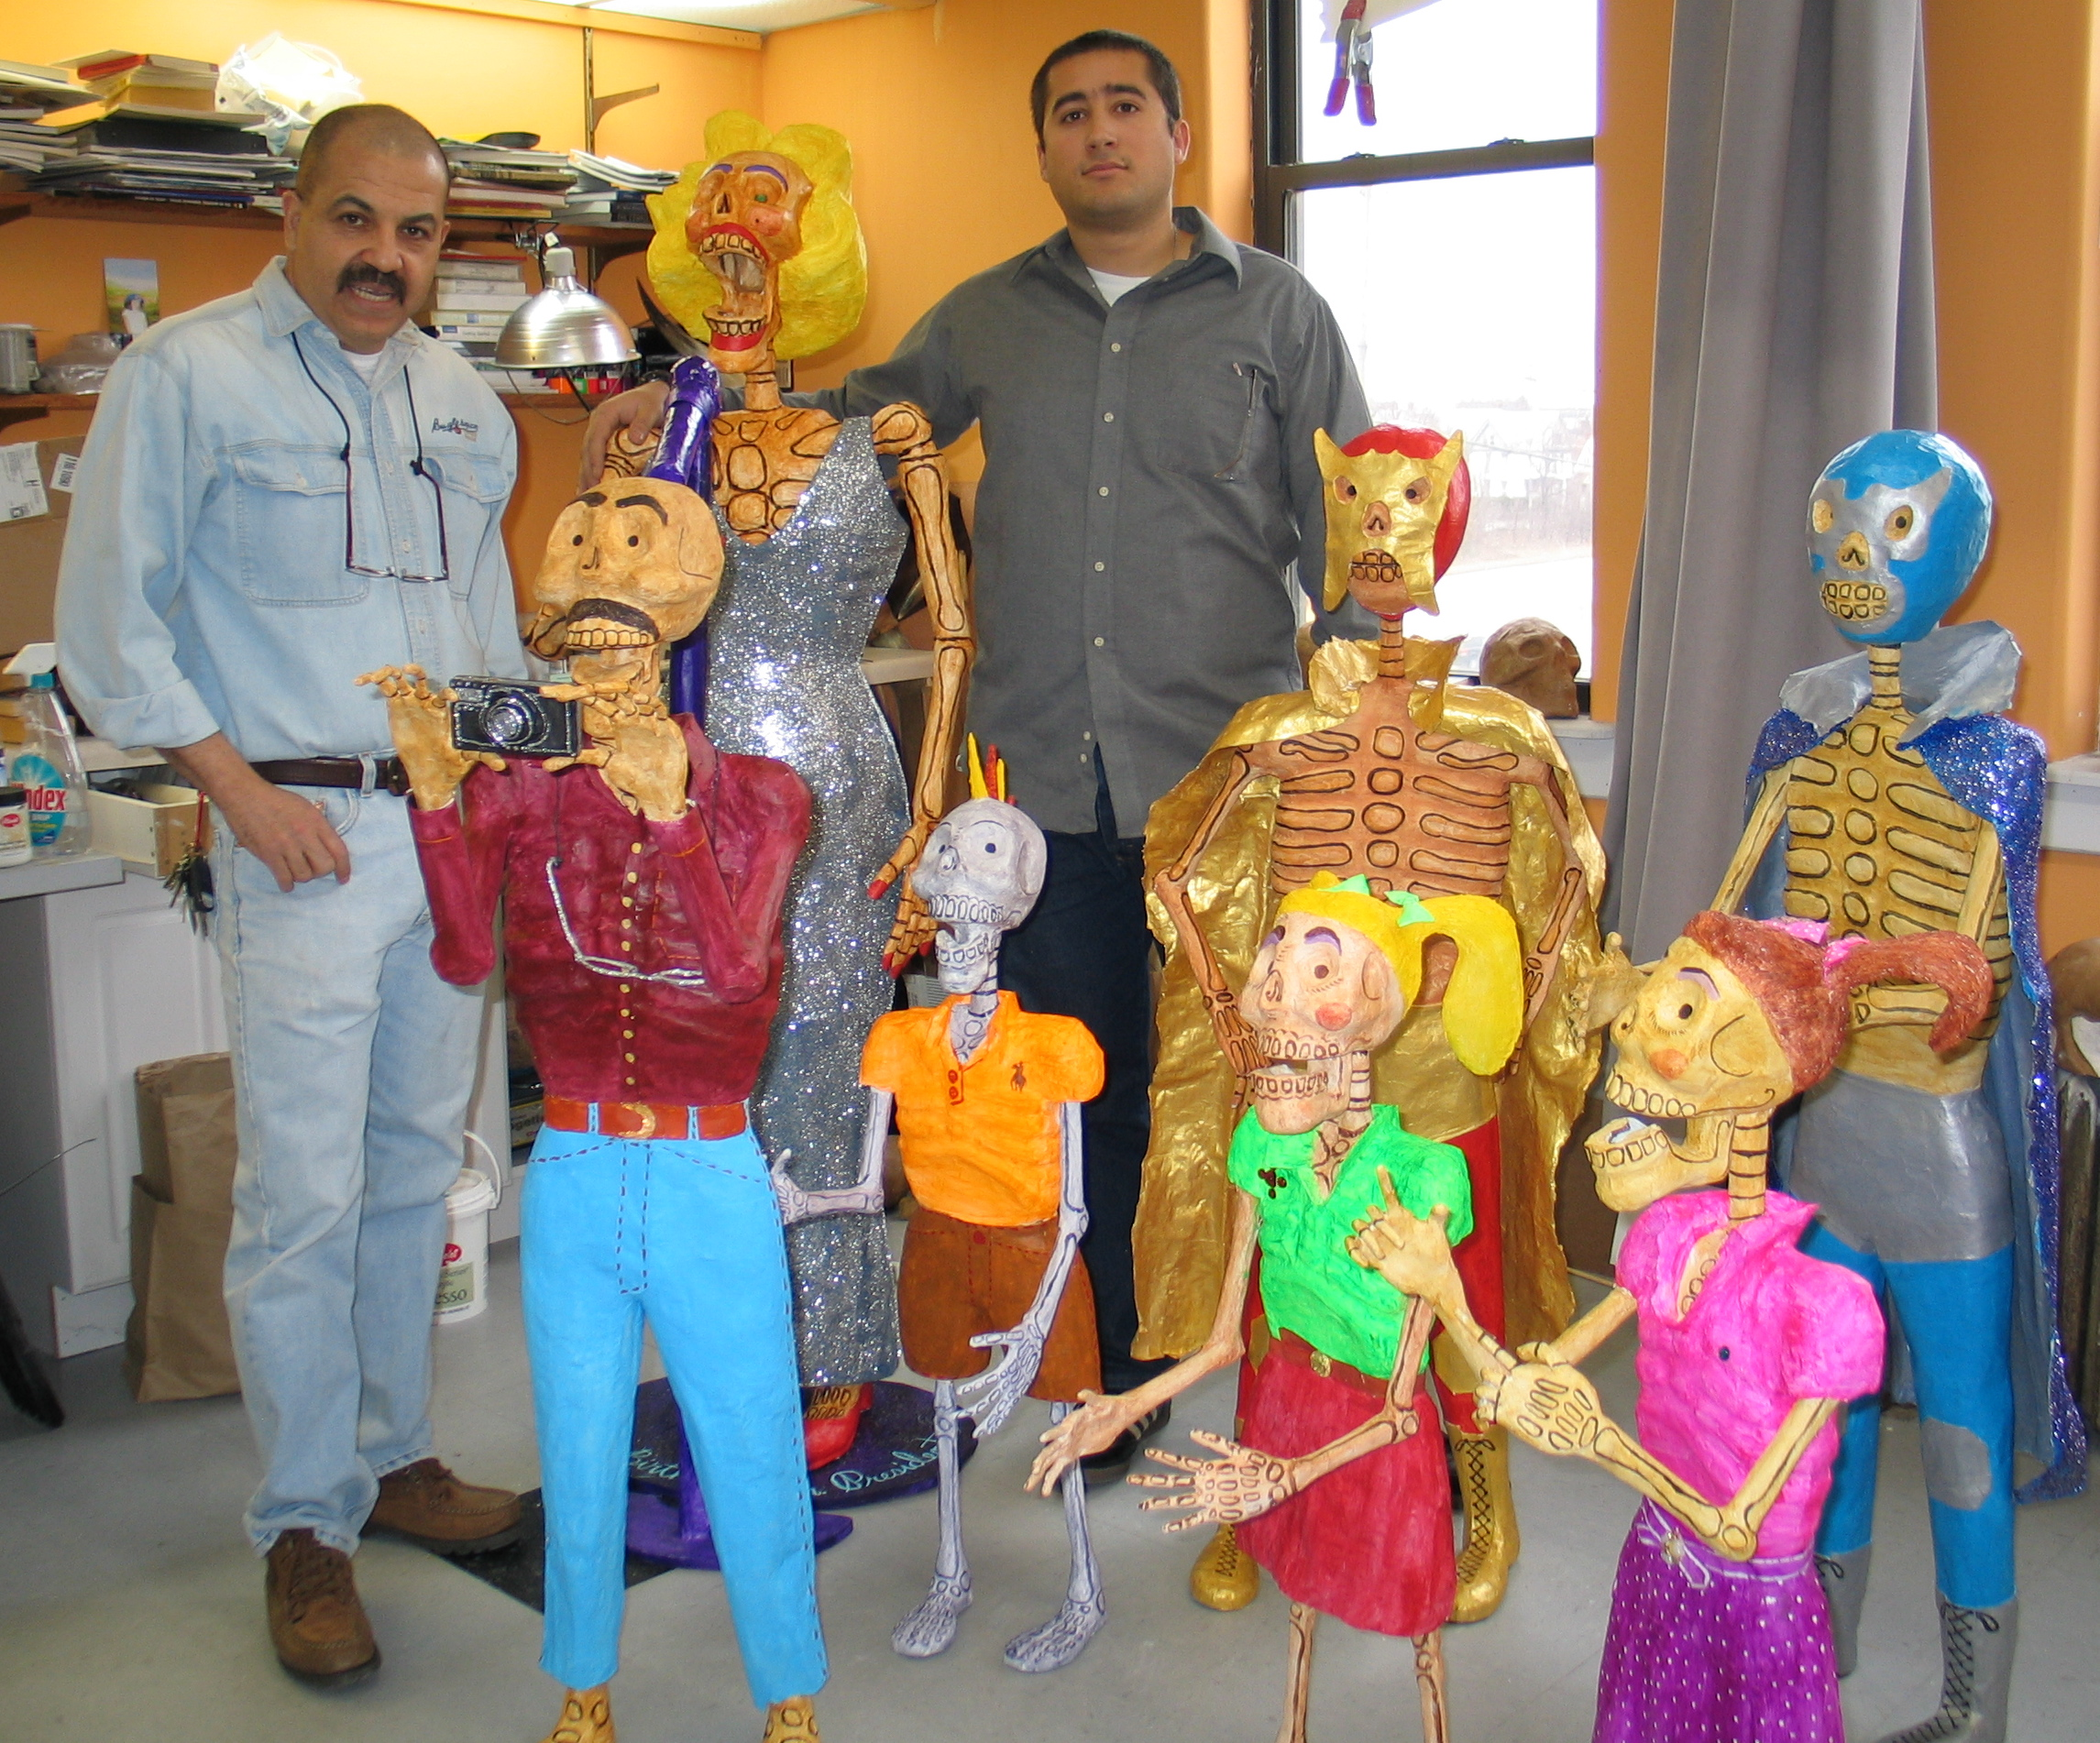 Jose Chavez and his apprentice Emiliano Lake-Herrera, both of Milwaukee, created paper mache figures used in Day of the Dead celebrations.